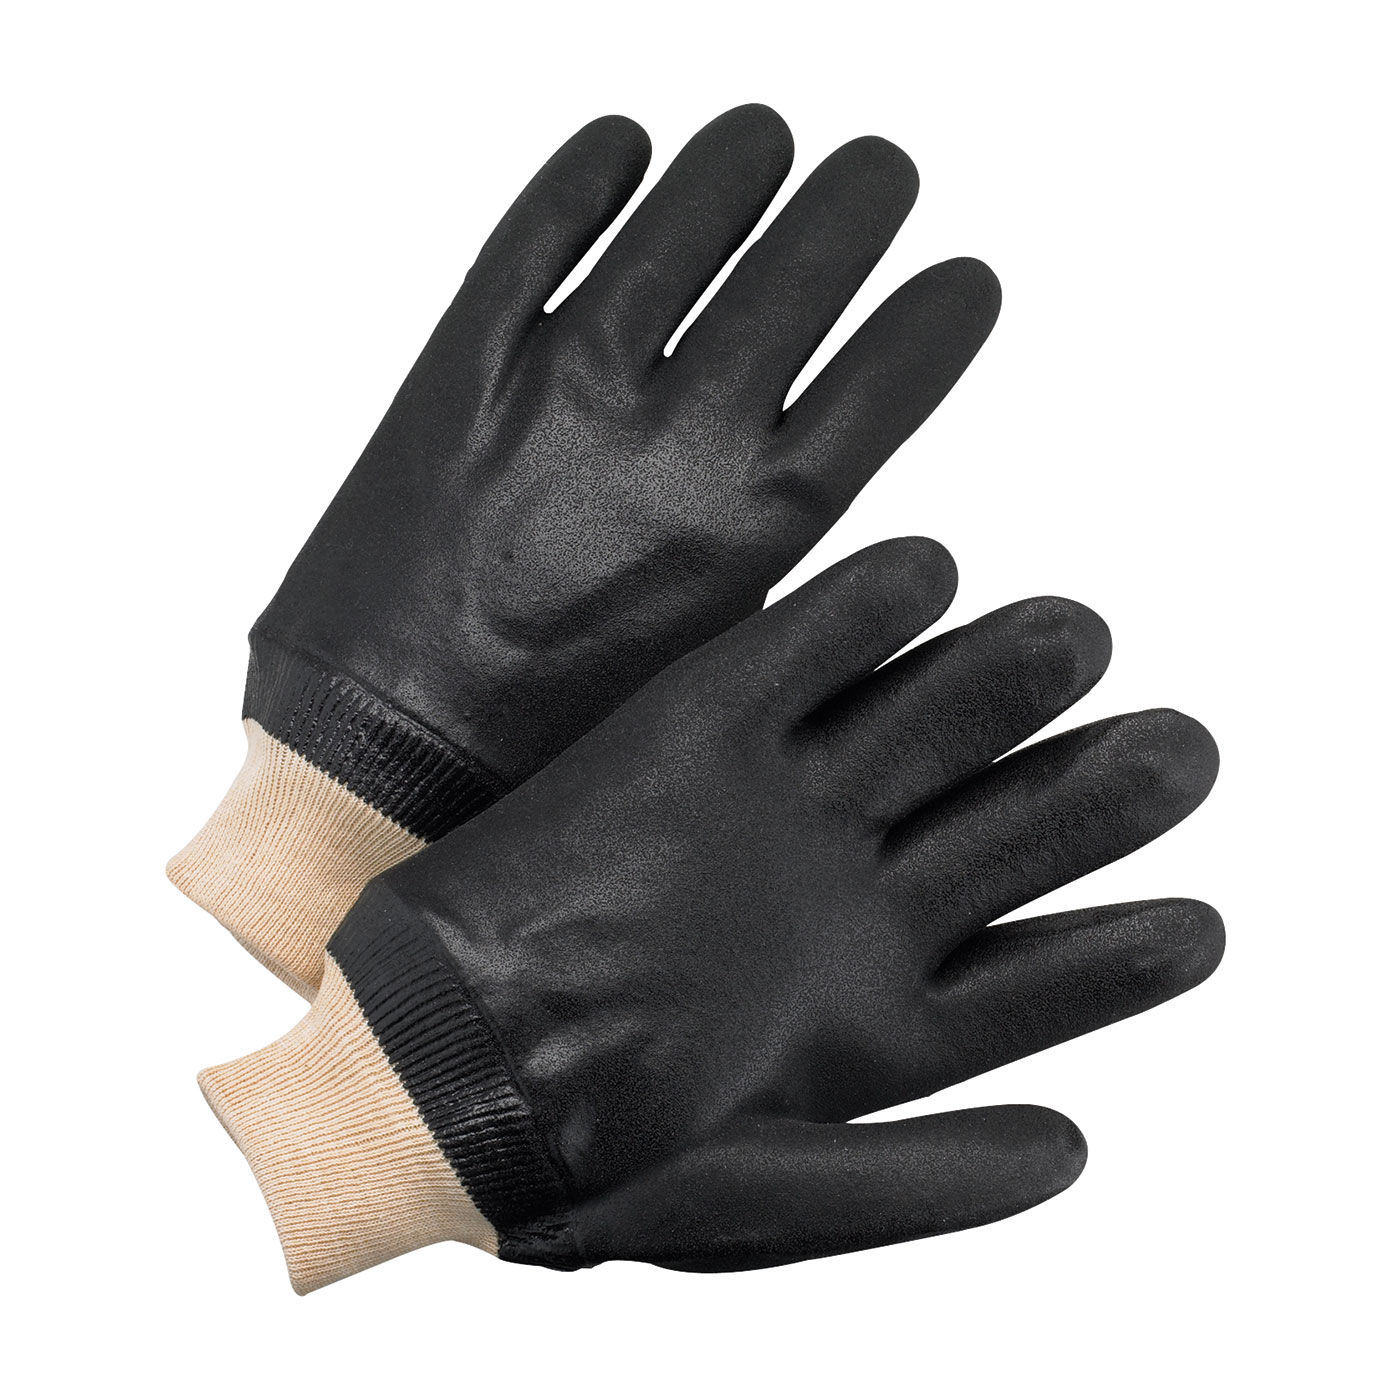 PVC Dipped Glove with Jersey Liner and Rough Finish - Knitwrist, Black, L